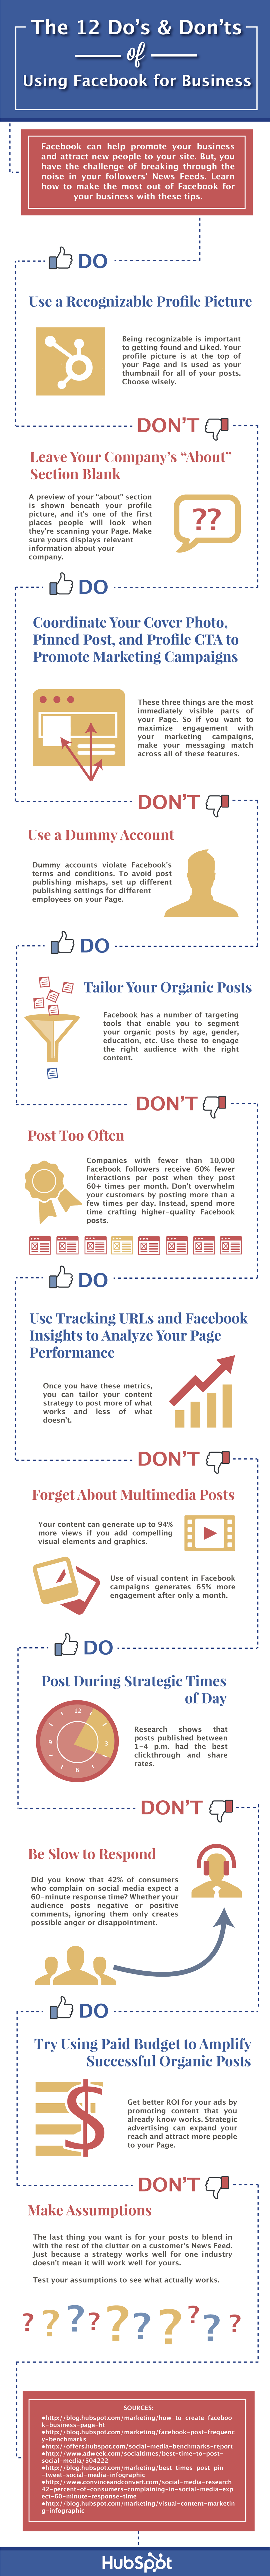 facebook-business-dos-and-donts---final.png